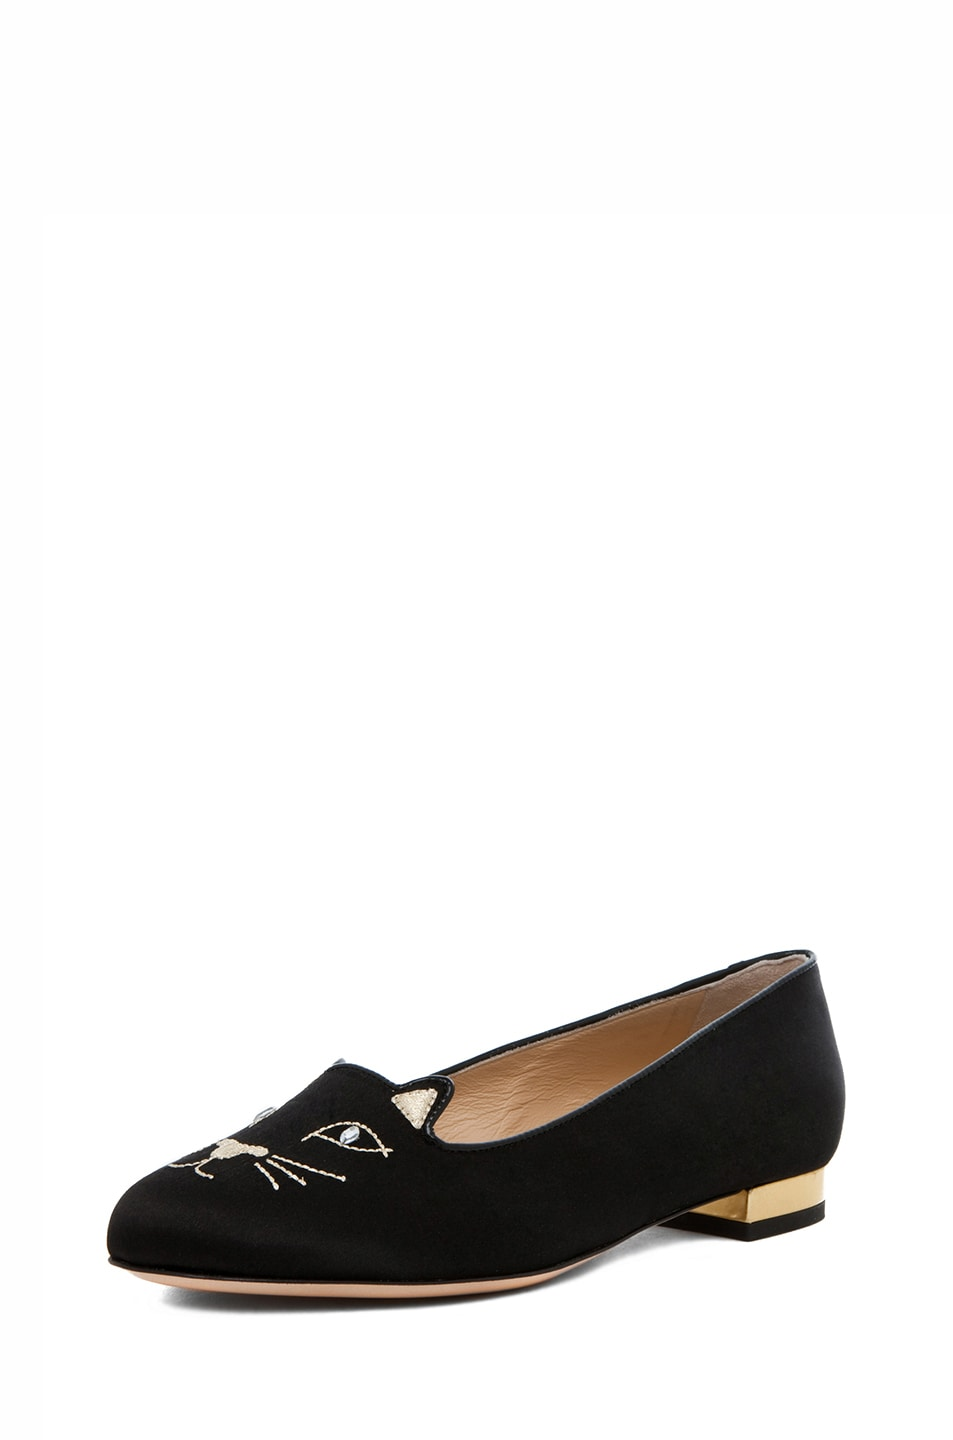 Image 2 of Charlotte Olympia Kitty Satin Flats in Black & Gold